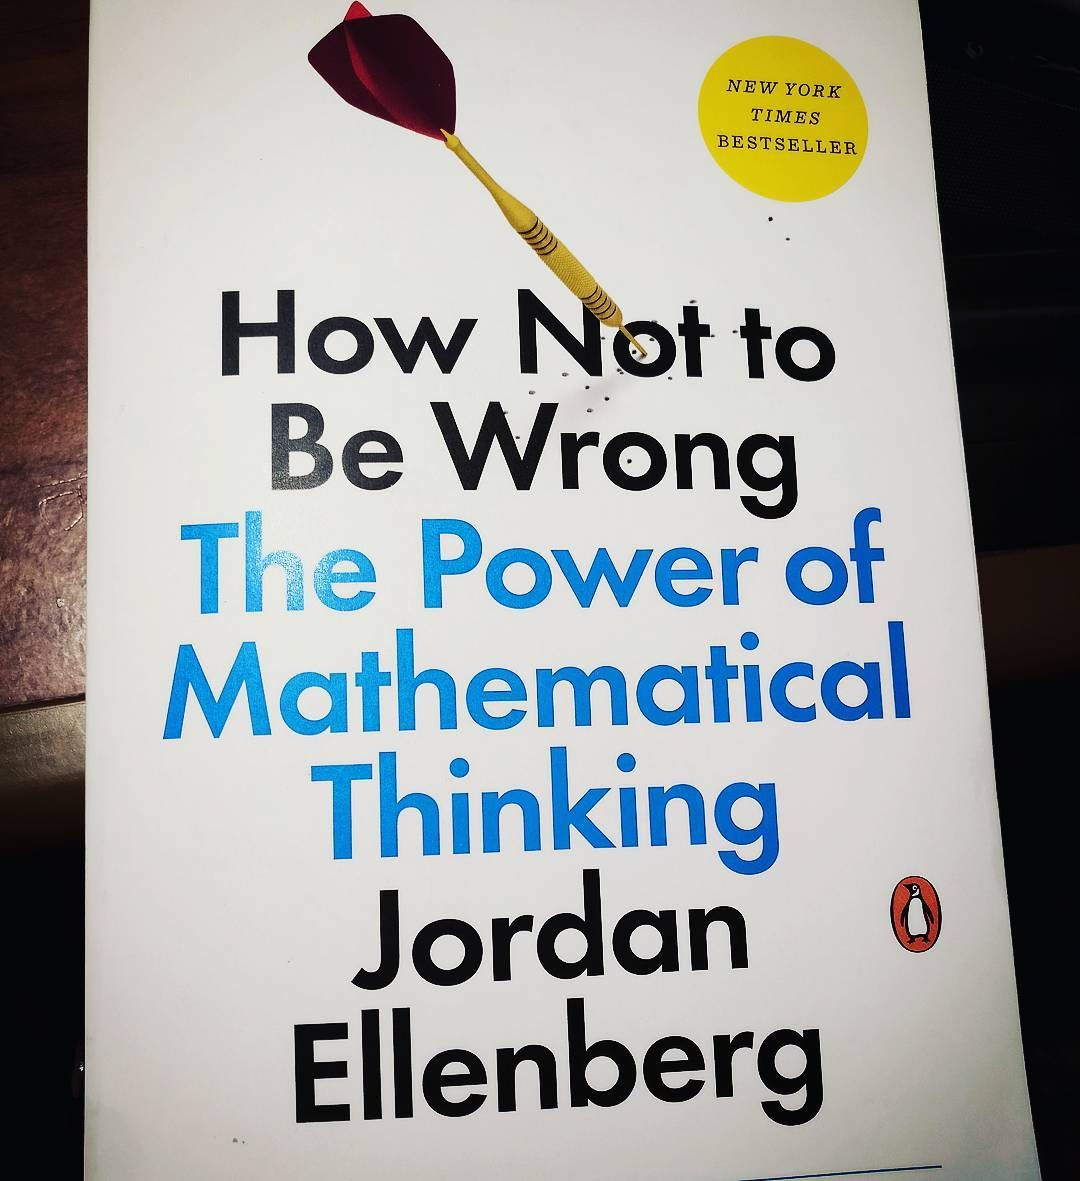 jordan ellenberg how not to be wrong the power of mathematical thinking 060817.